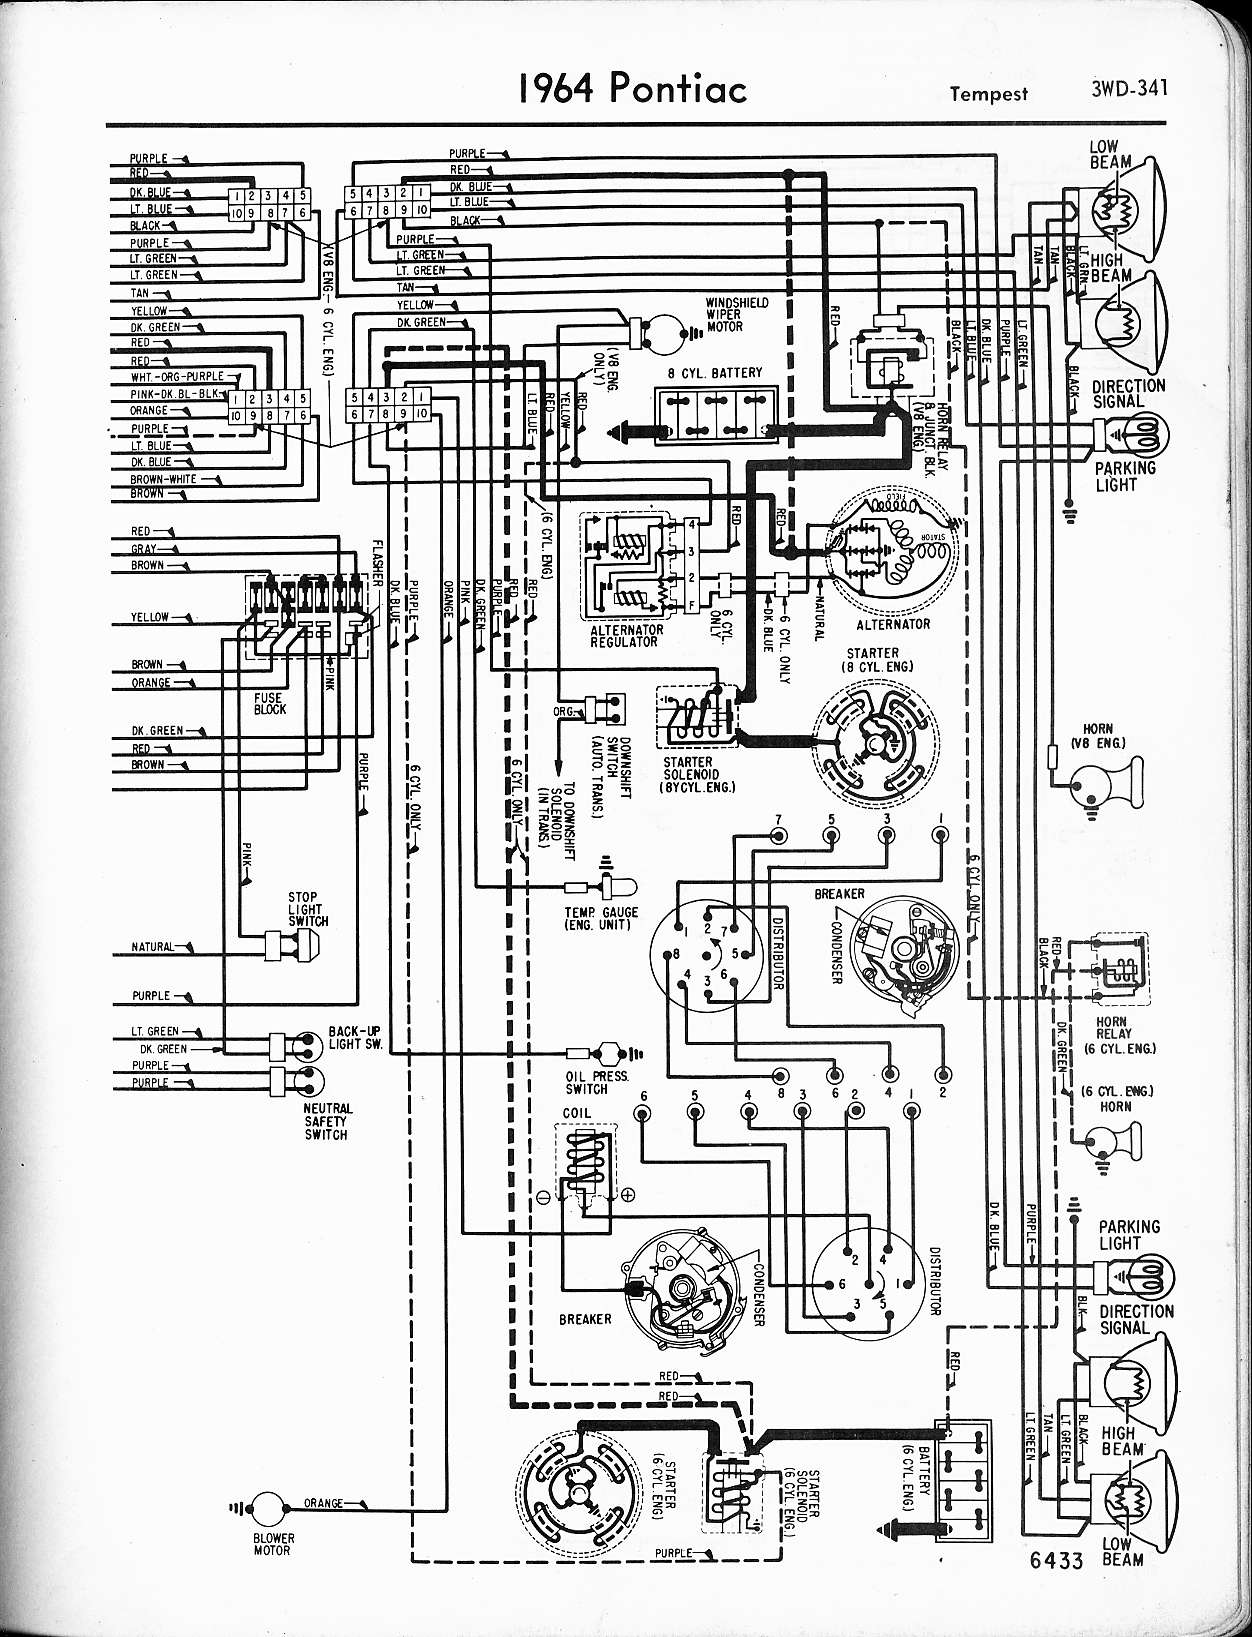 1967 Pontiac Wiring Diagram Change Your Idea With Tempest 1964 Gto Schema Online Rh 11 16 Travelmate Nz De